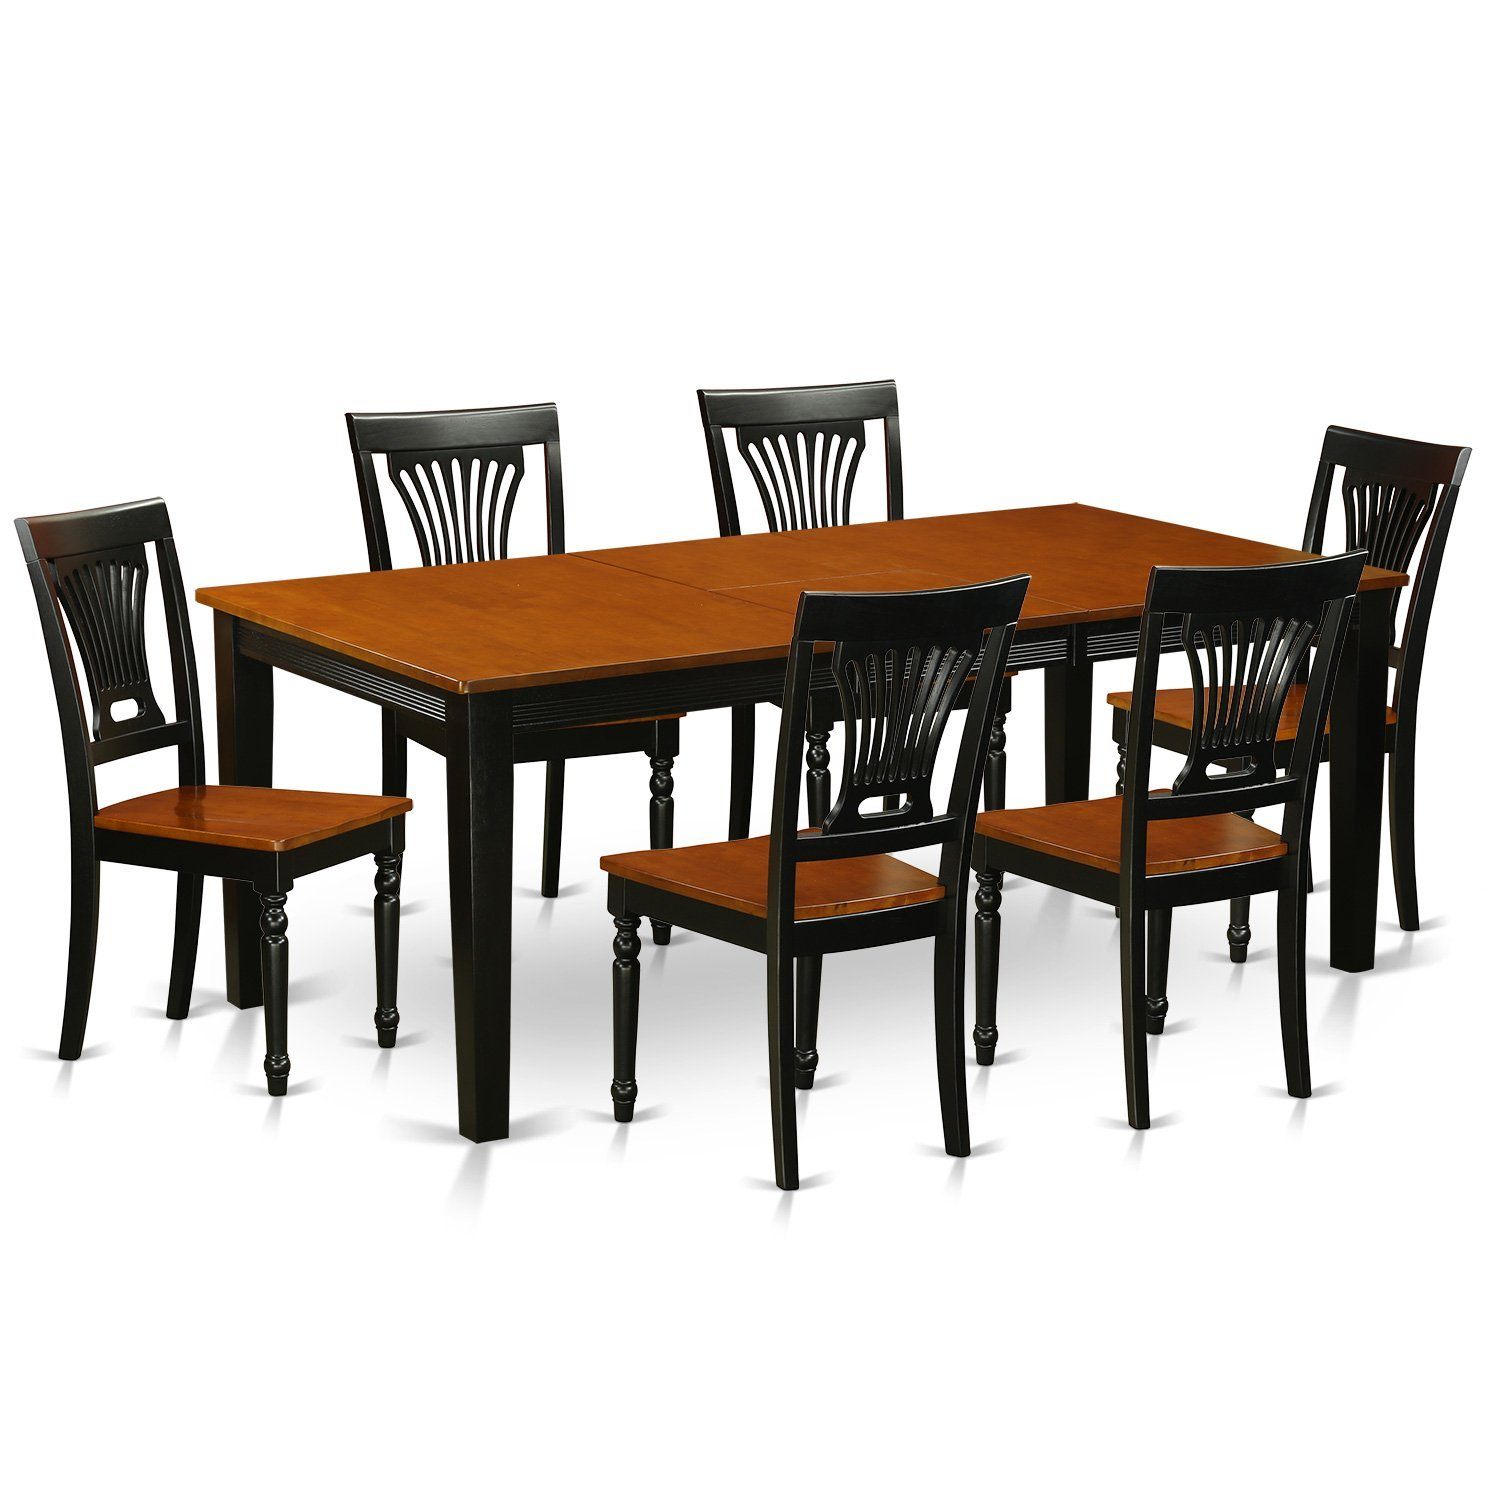 East West Furniture QUPL7-BCH-W 7 Piece Dinette Table and 6 Chairs